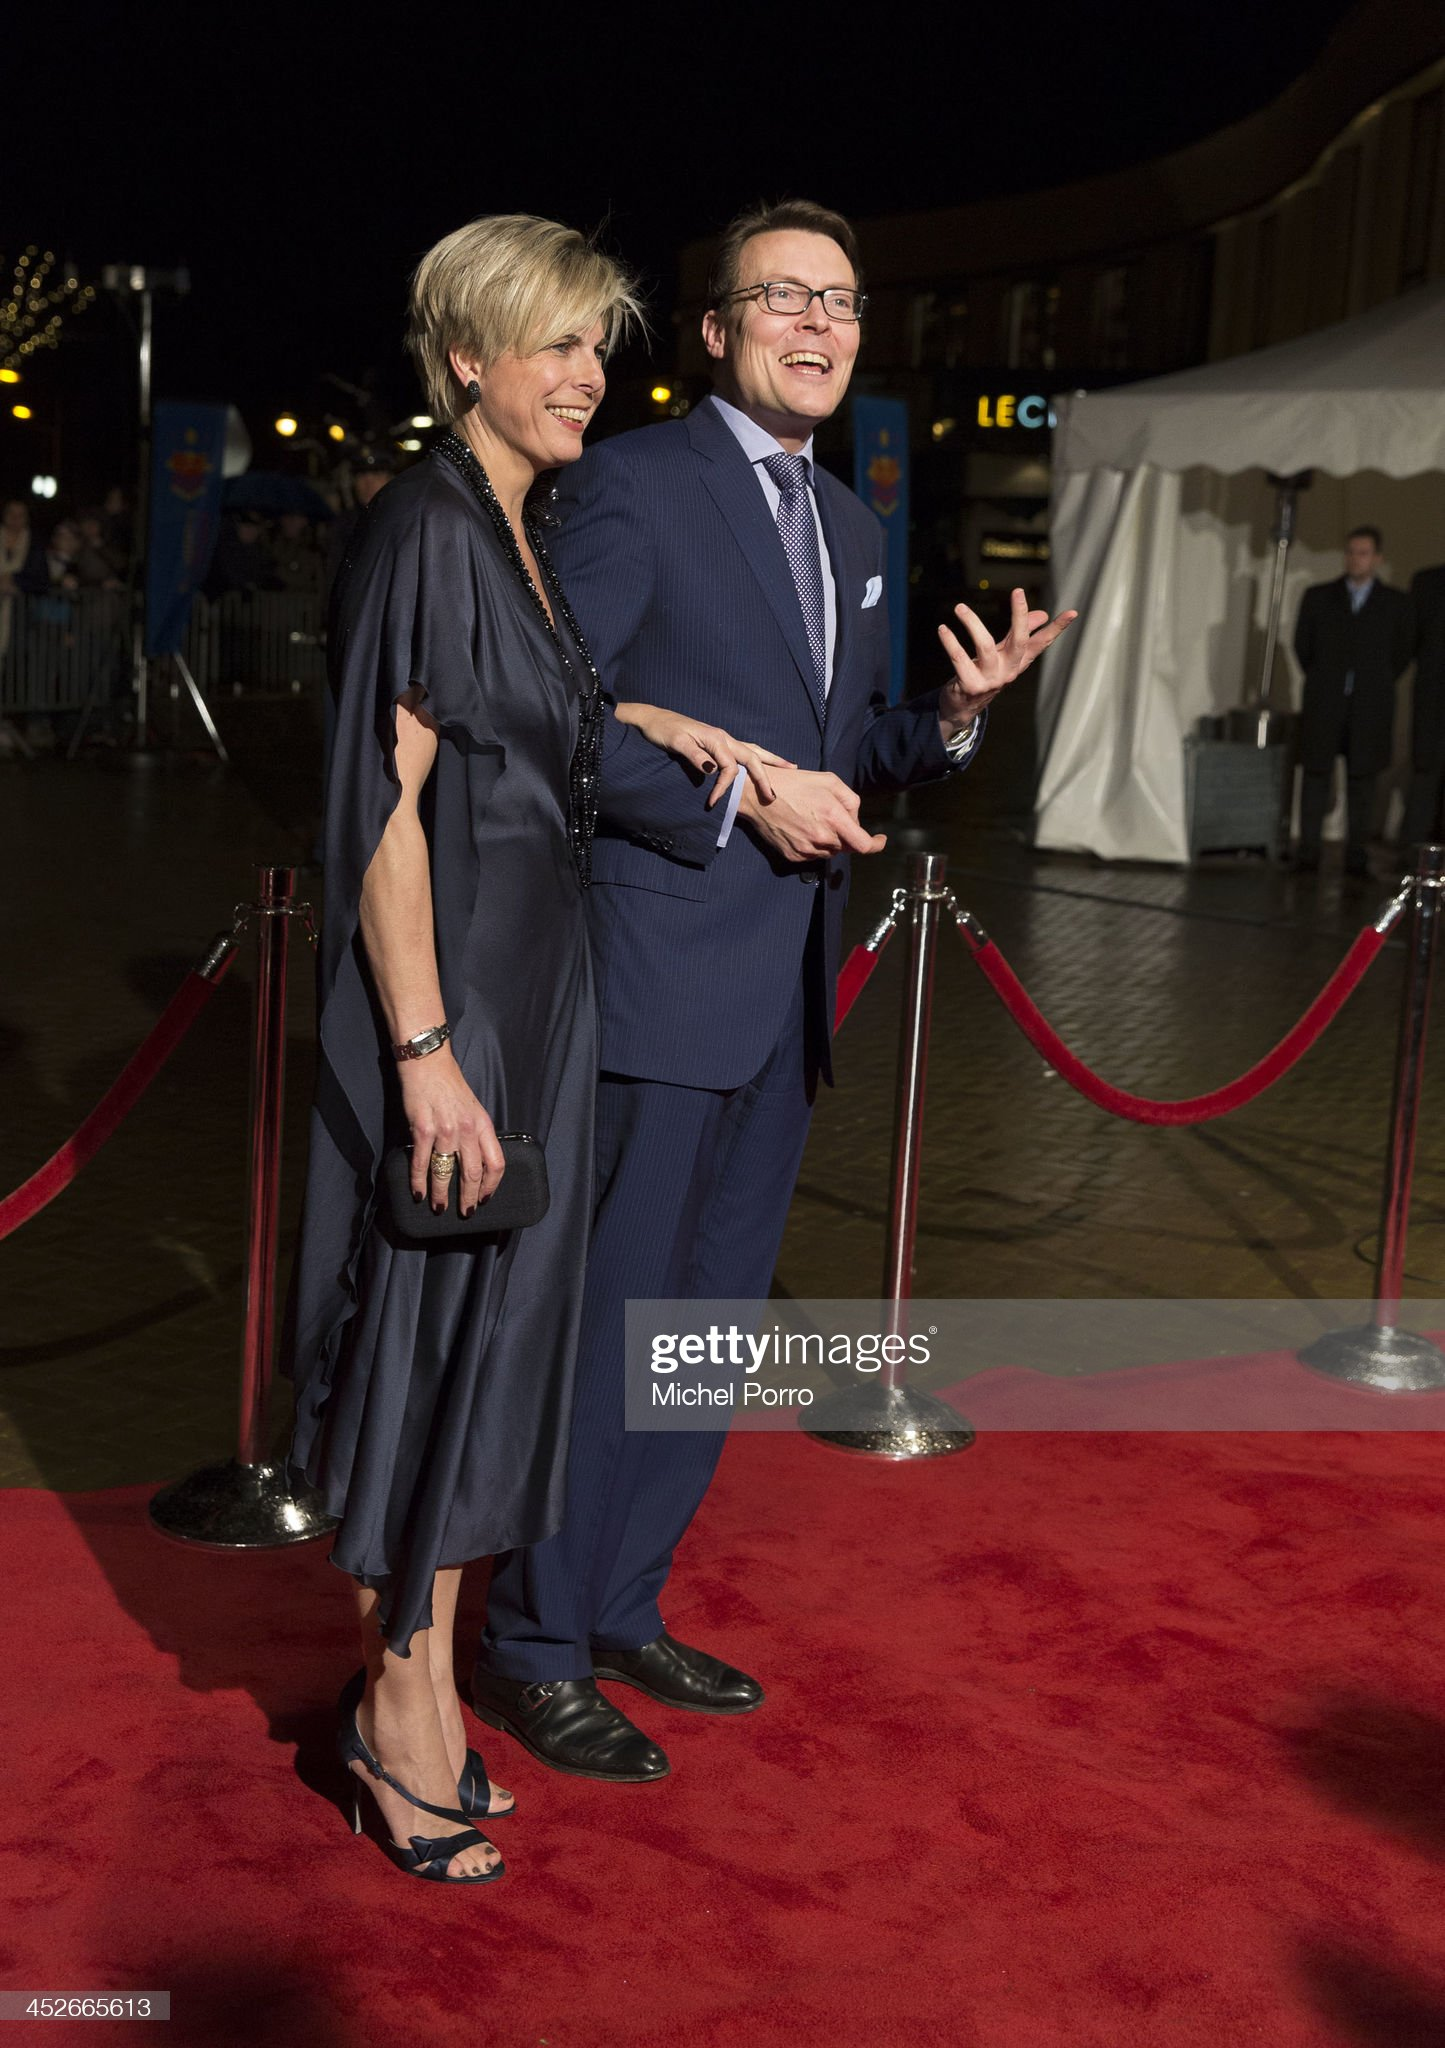 King Willem-Alexander And Queen Maxima Attend 200th Anniversary Celebration Of The Kingdom Of The Netherlands : News Photo